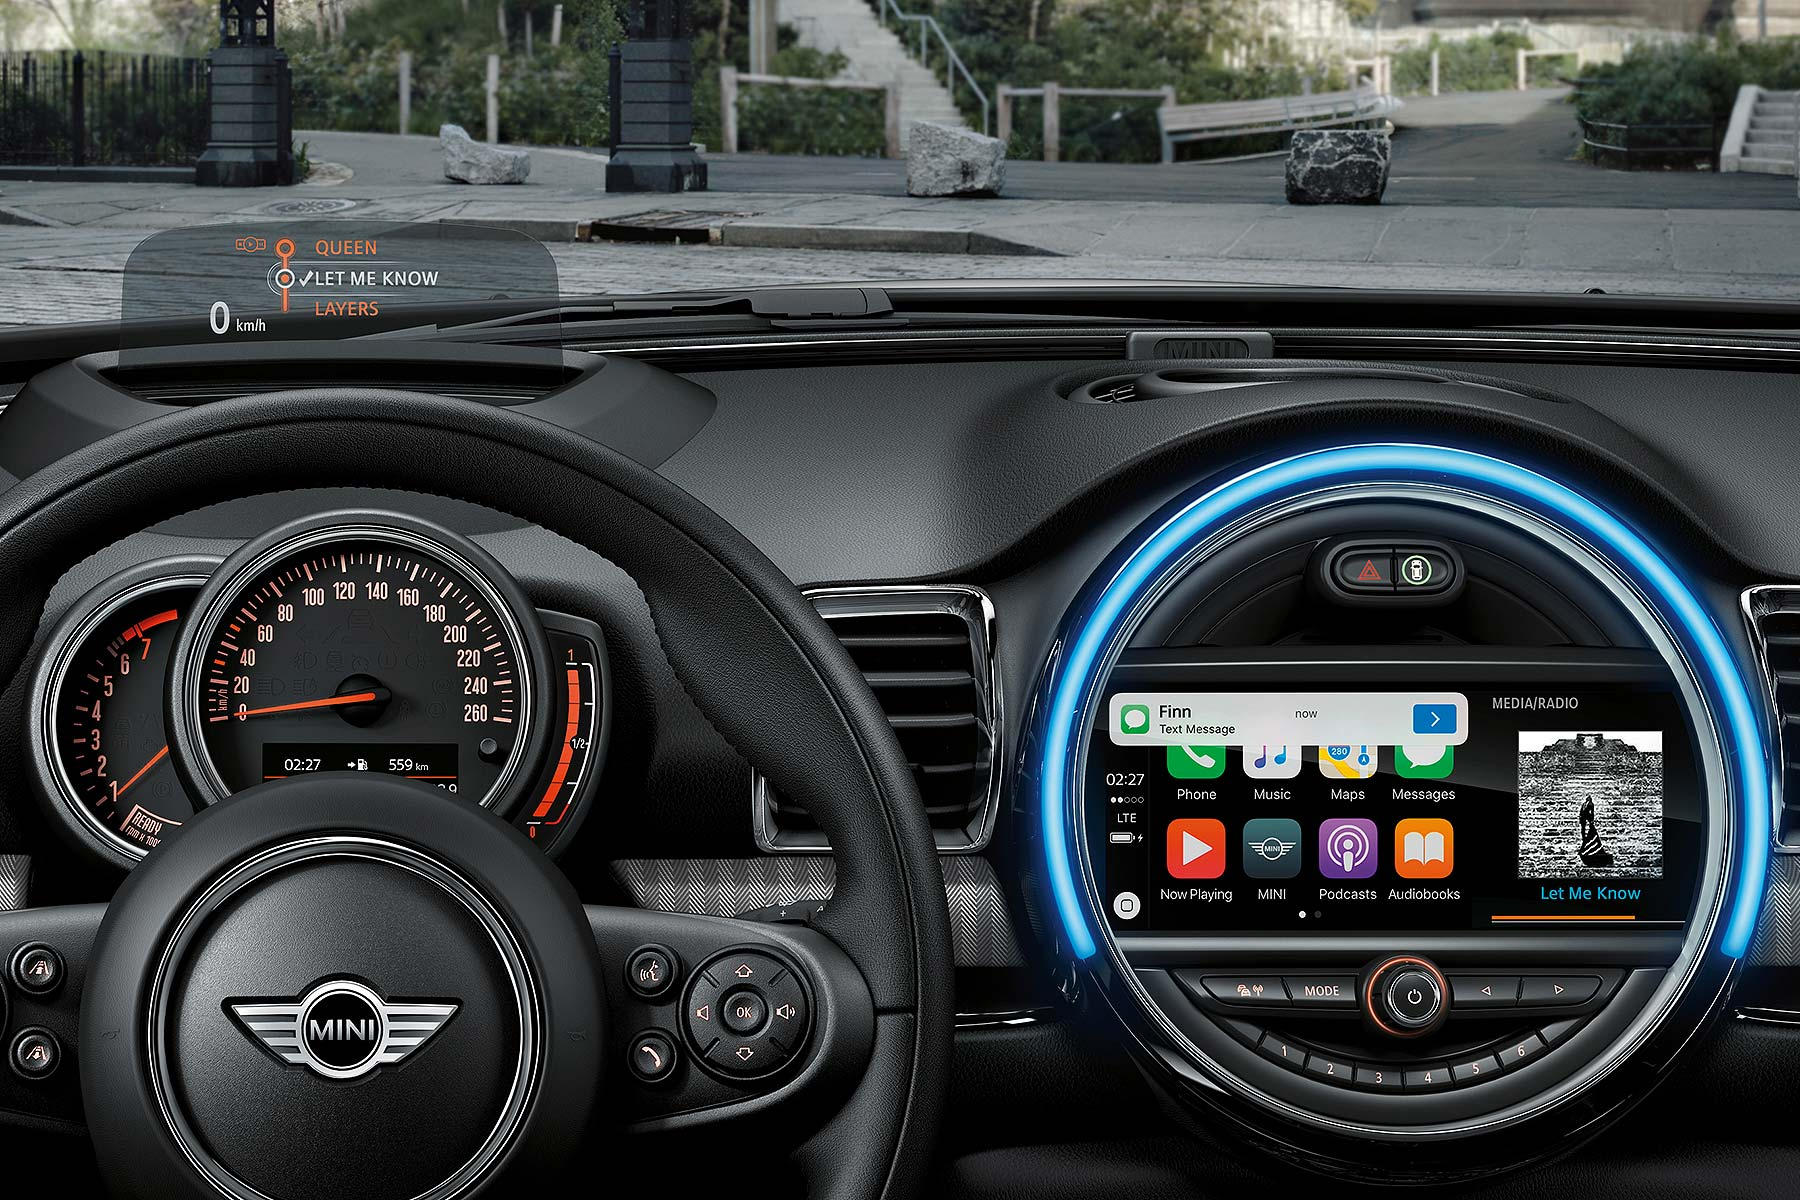 mini finally gets apple carplay for 2017 motoring research. Black Bedroom Furniture Sets. Home Design Ideas